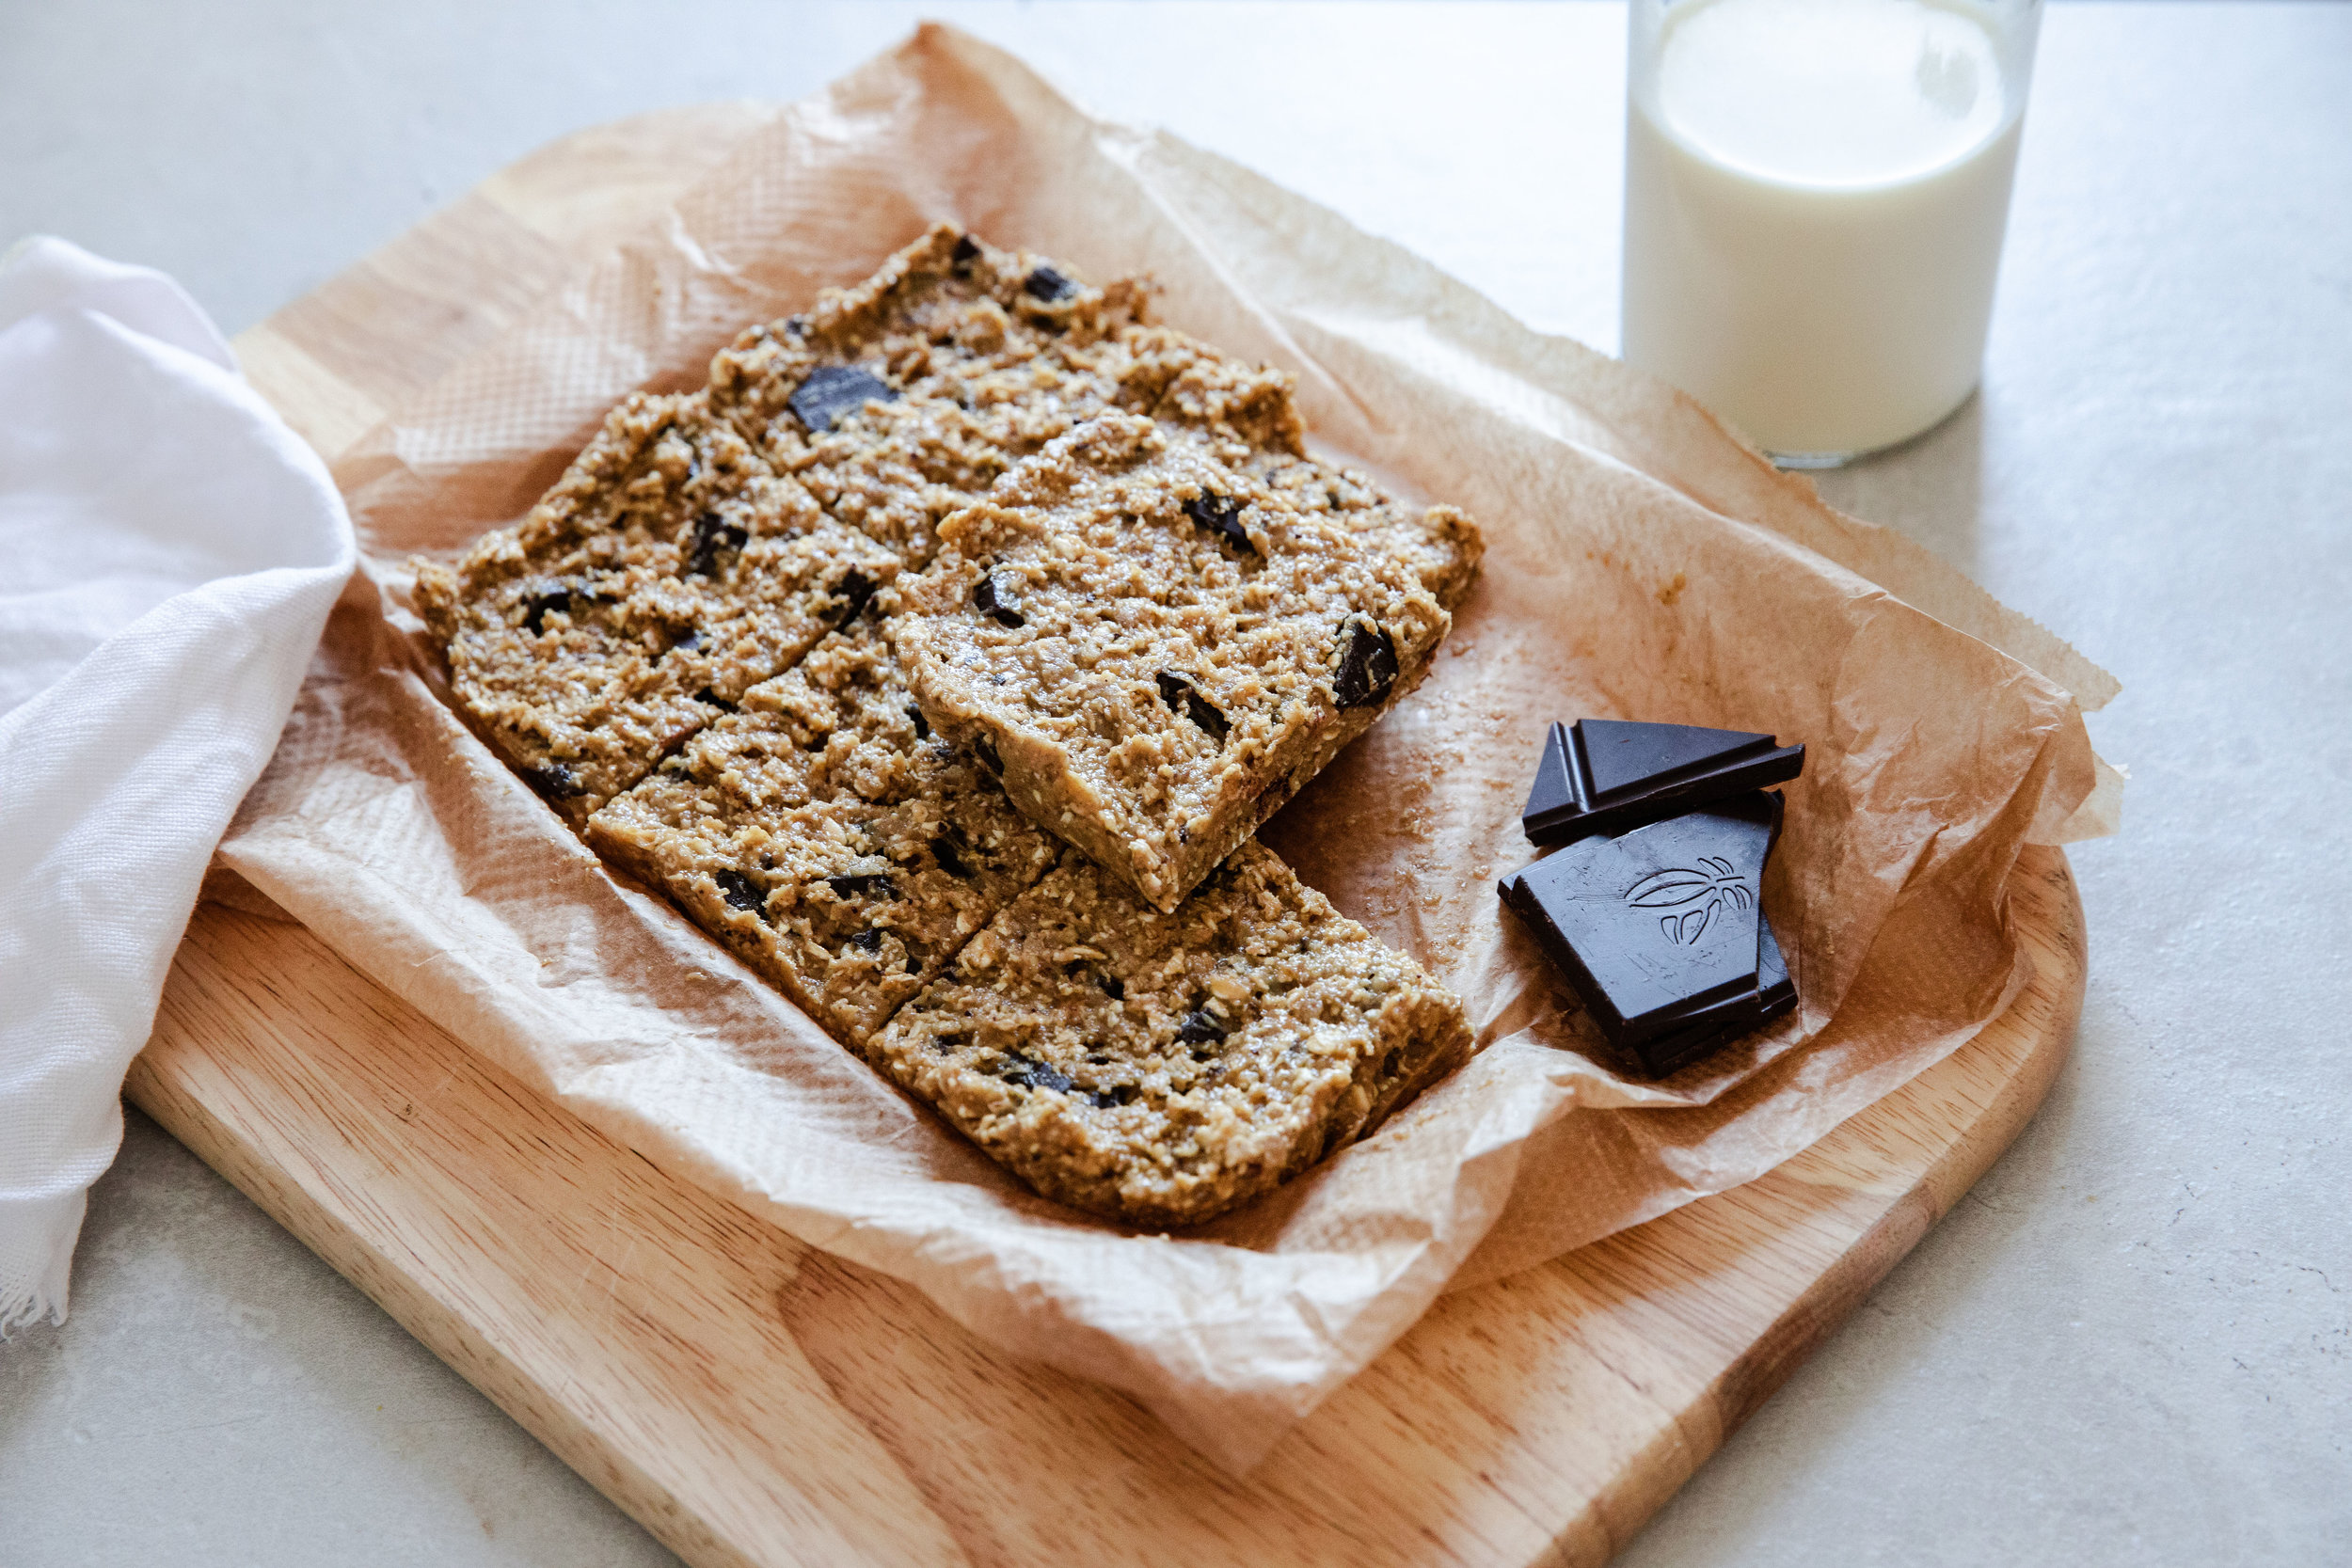 Ideal as a protein packed pick me up throughout the day! - prep time overnight total time 5-10 mins makes 6 bars